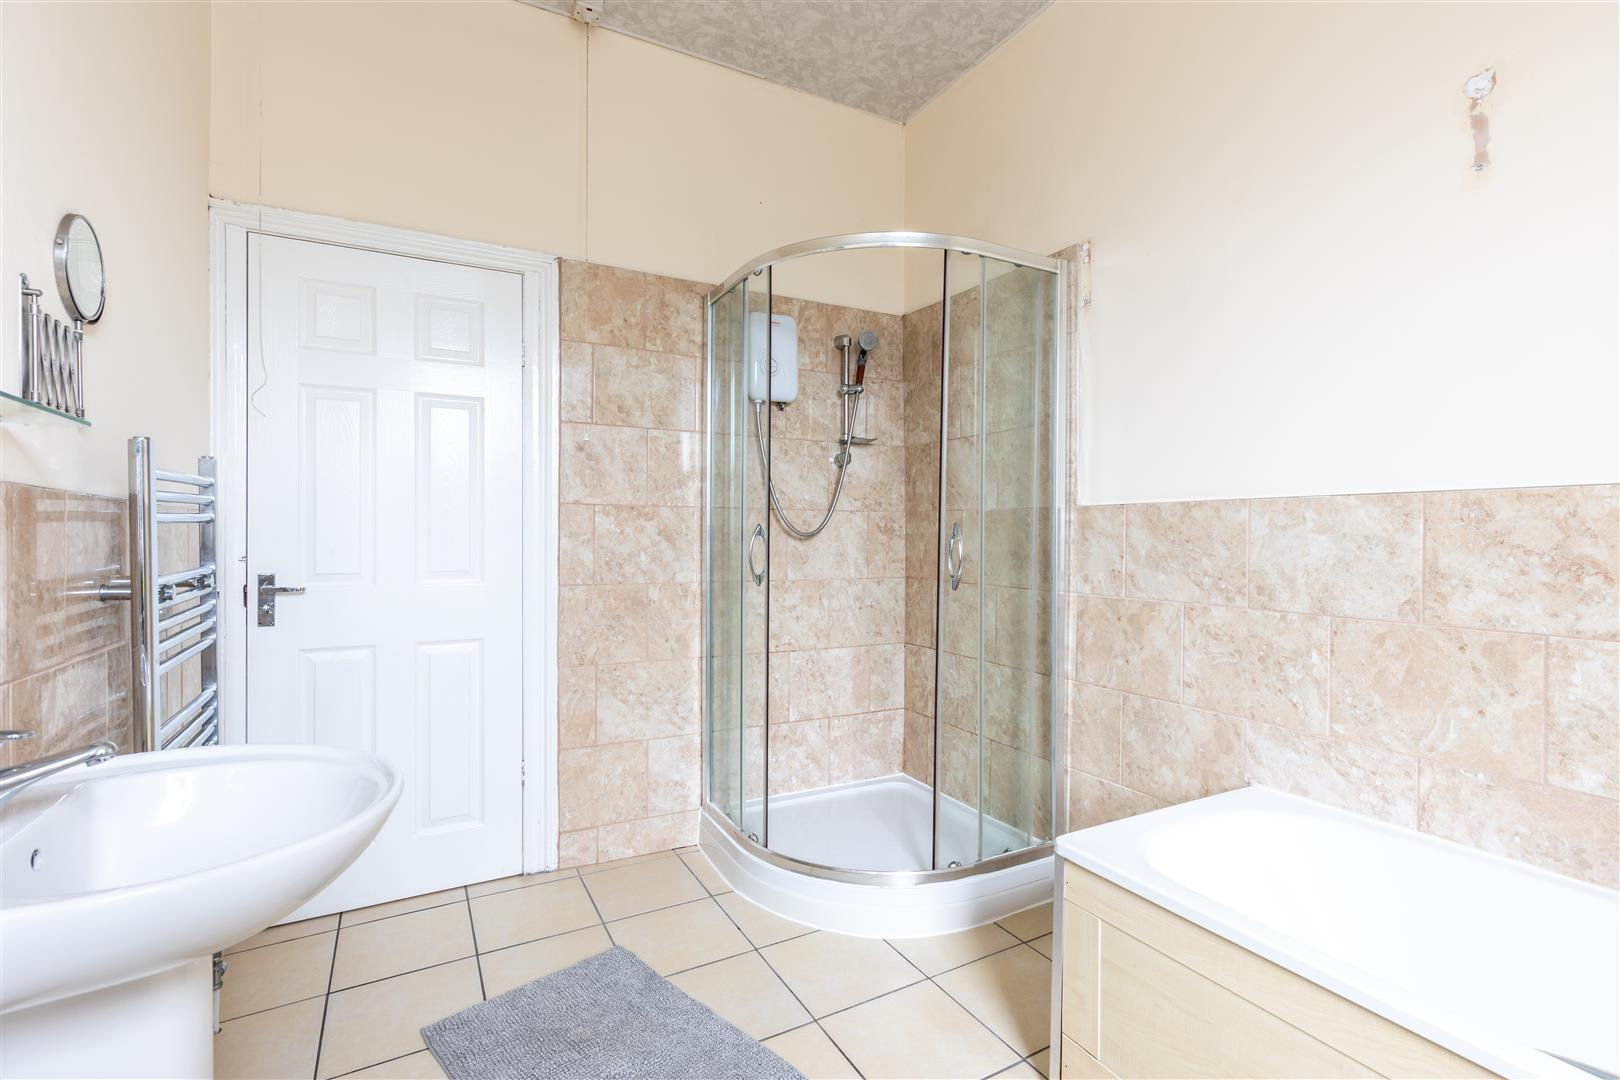 5 bed terraced house to rent in Newcastle Upon Tyne, NE6 5BT  - Property Image 11